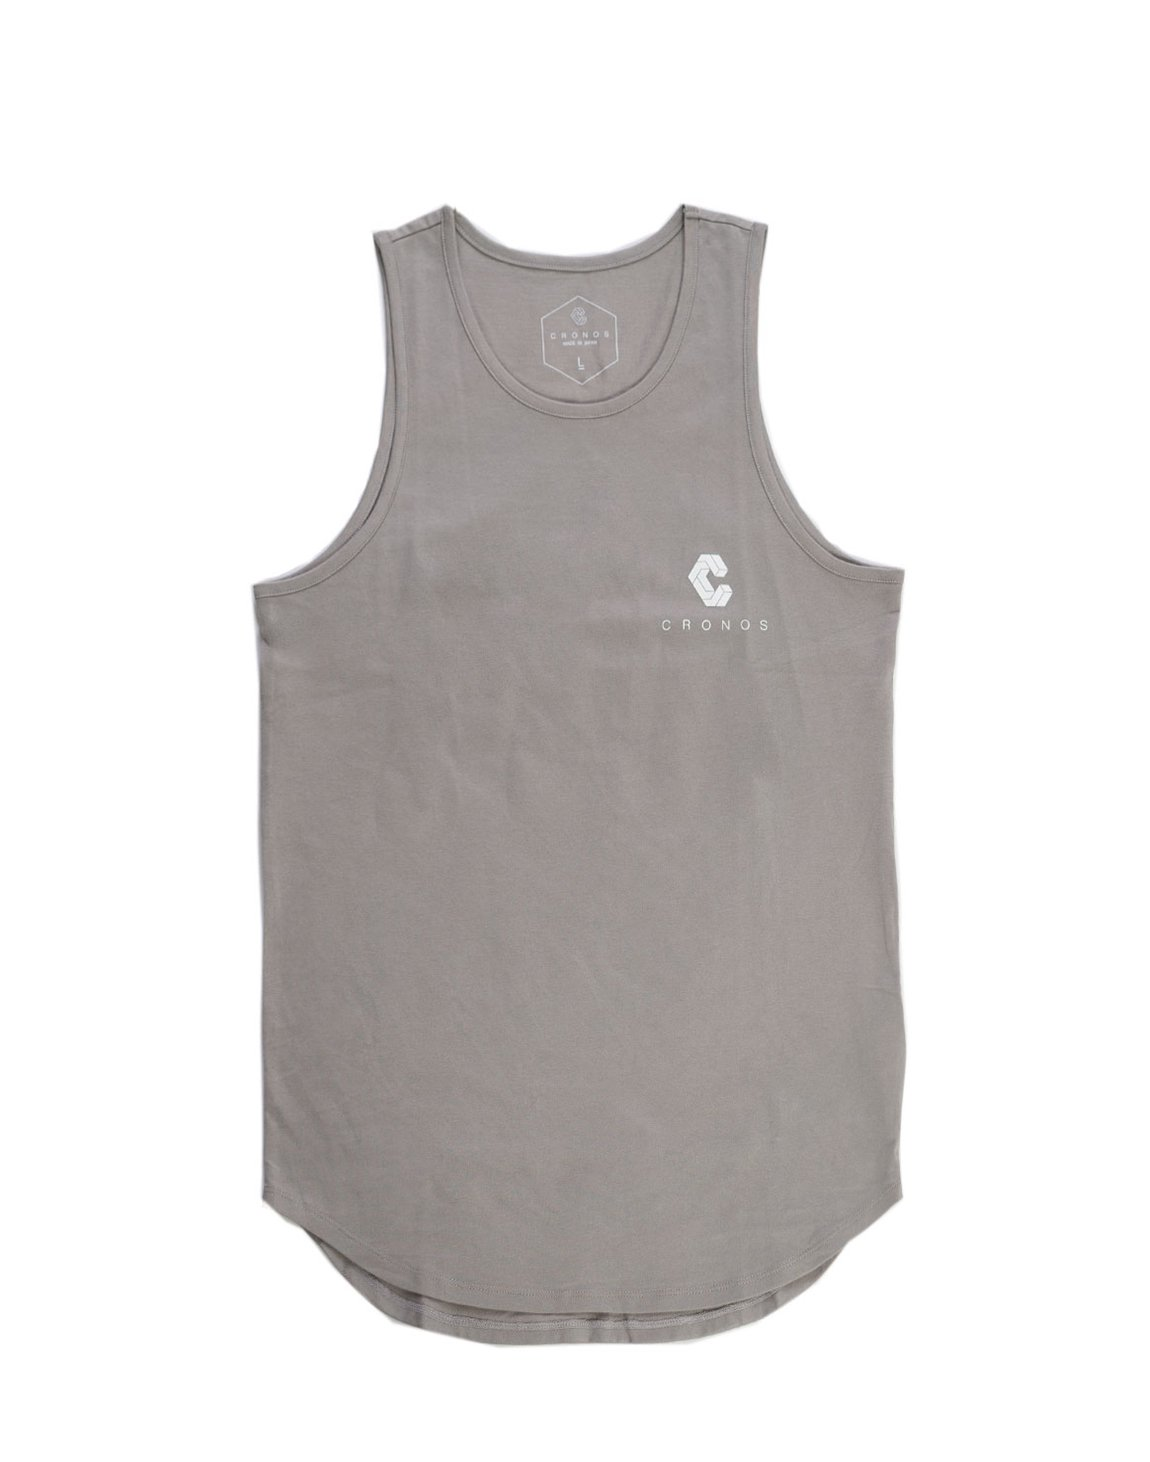 <img class='new_mark_img1' src='https://img.shop-pro.jp/img/new/icons1.gif' style='border:none;display:inline;margin:0px;padding:0px;width:auto;' />CRNS BACK BIG LOGO TANK TOP 【A.GRAY】